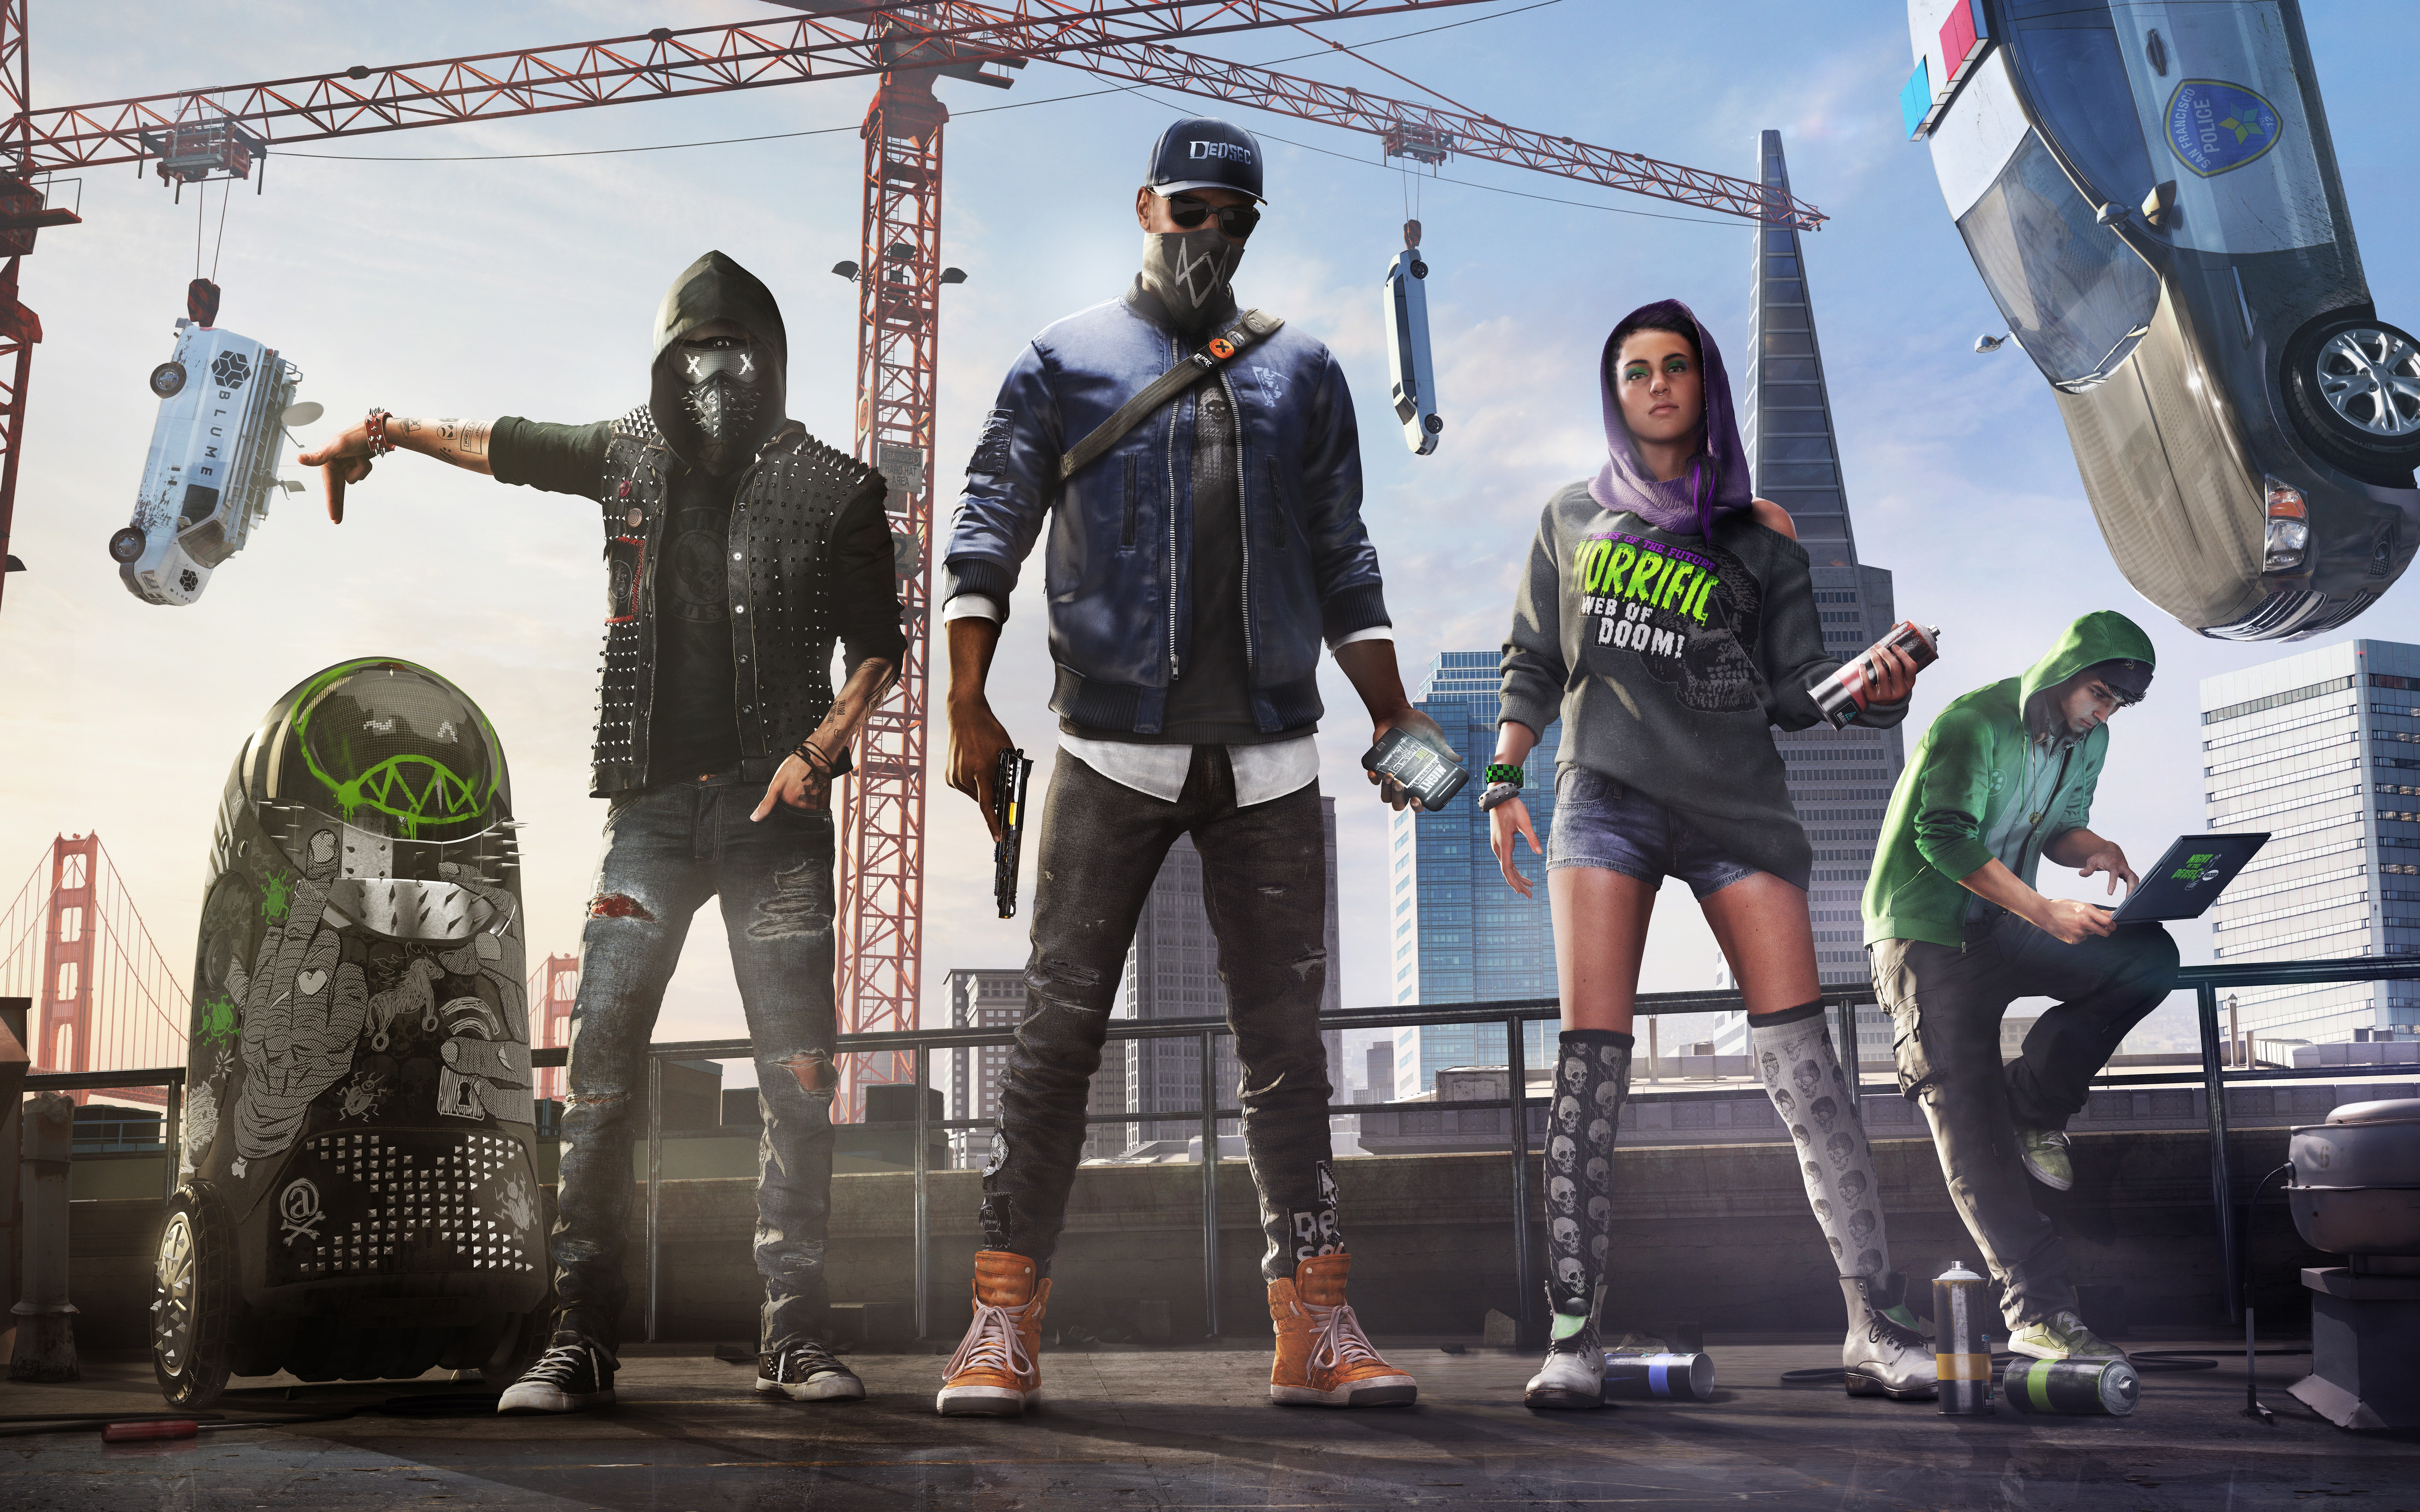 General 7680x4800 Upcoming Games Watch_Dogs 2 hackers hacking